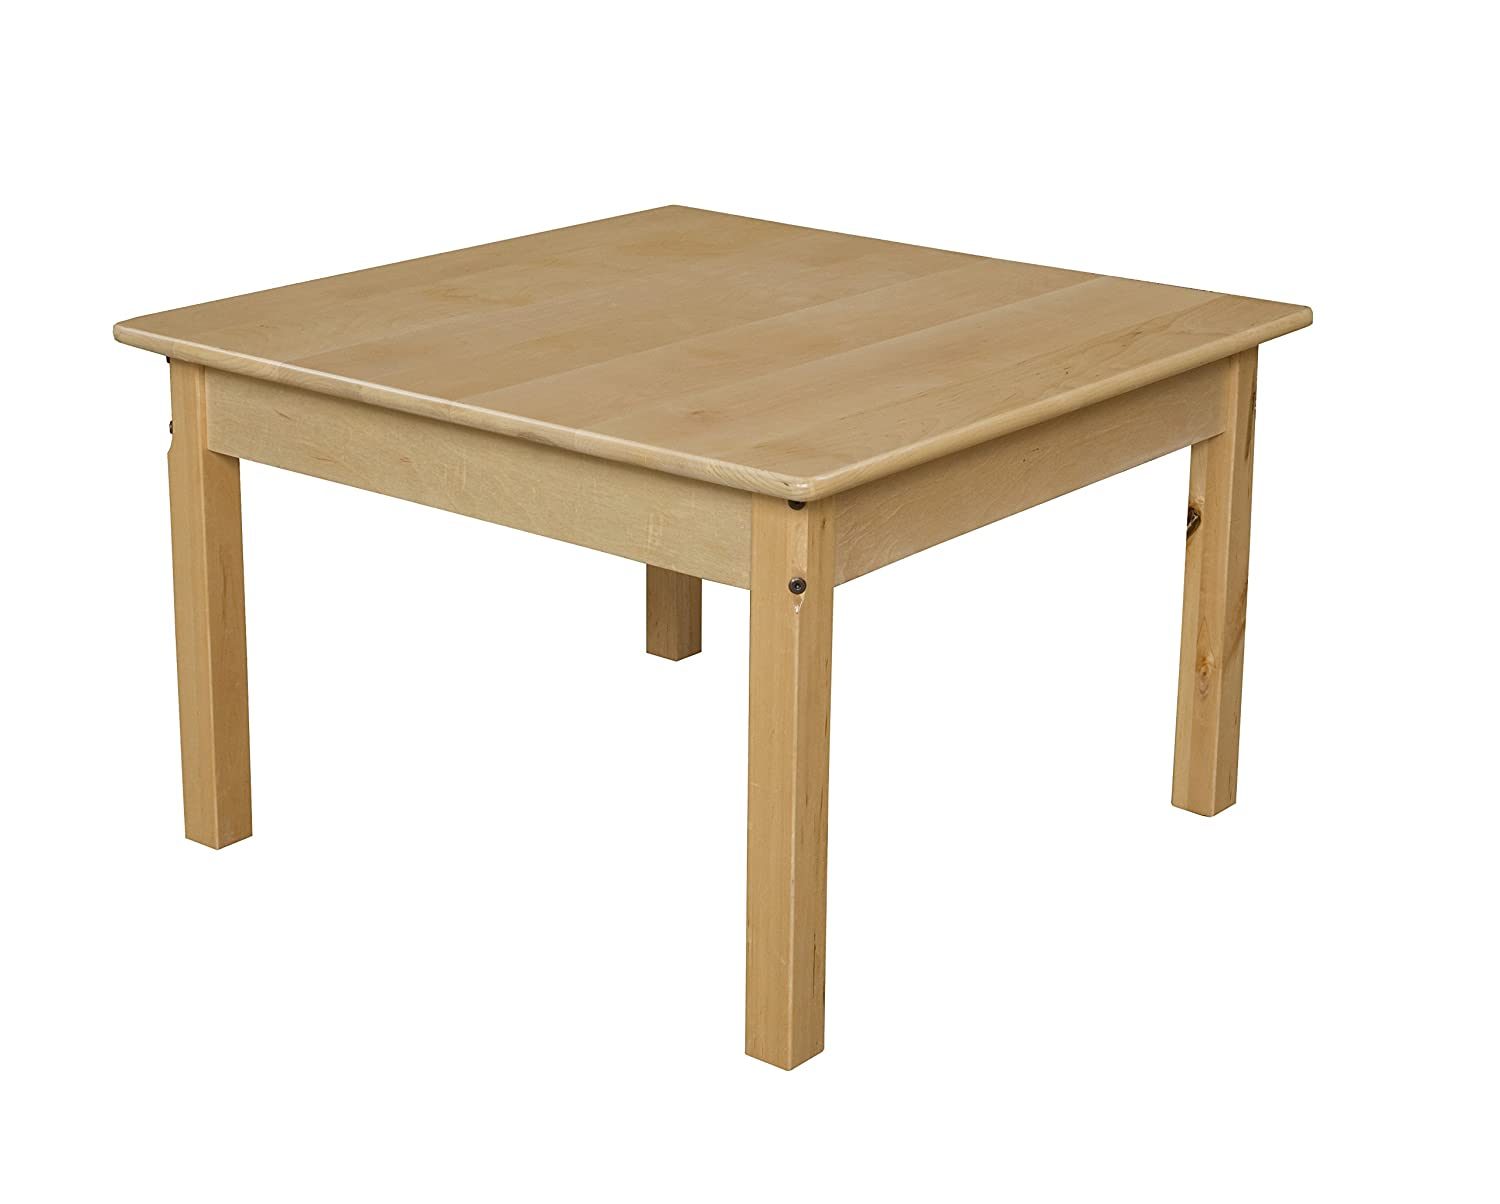 Wood Designs Wd83318 Child 39 S Table 30 Square With 18